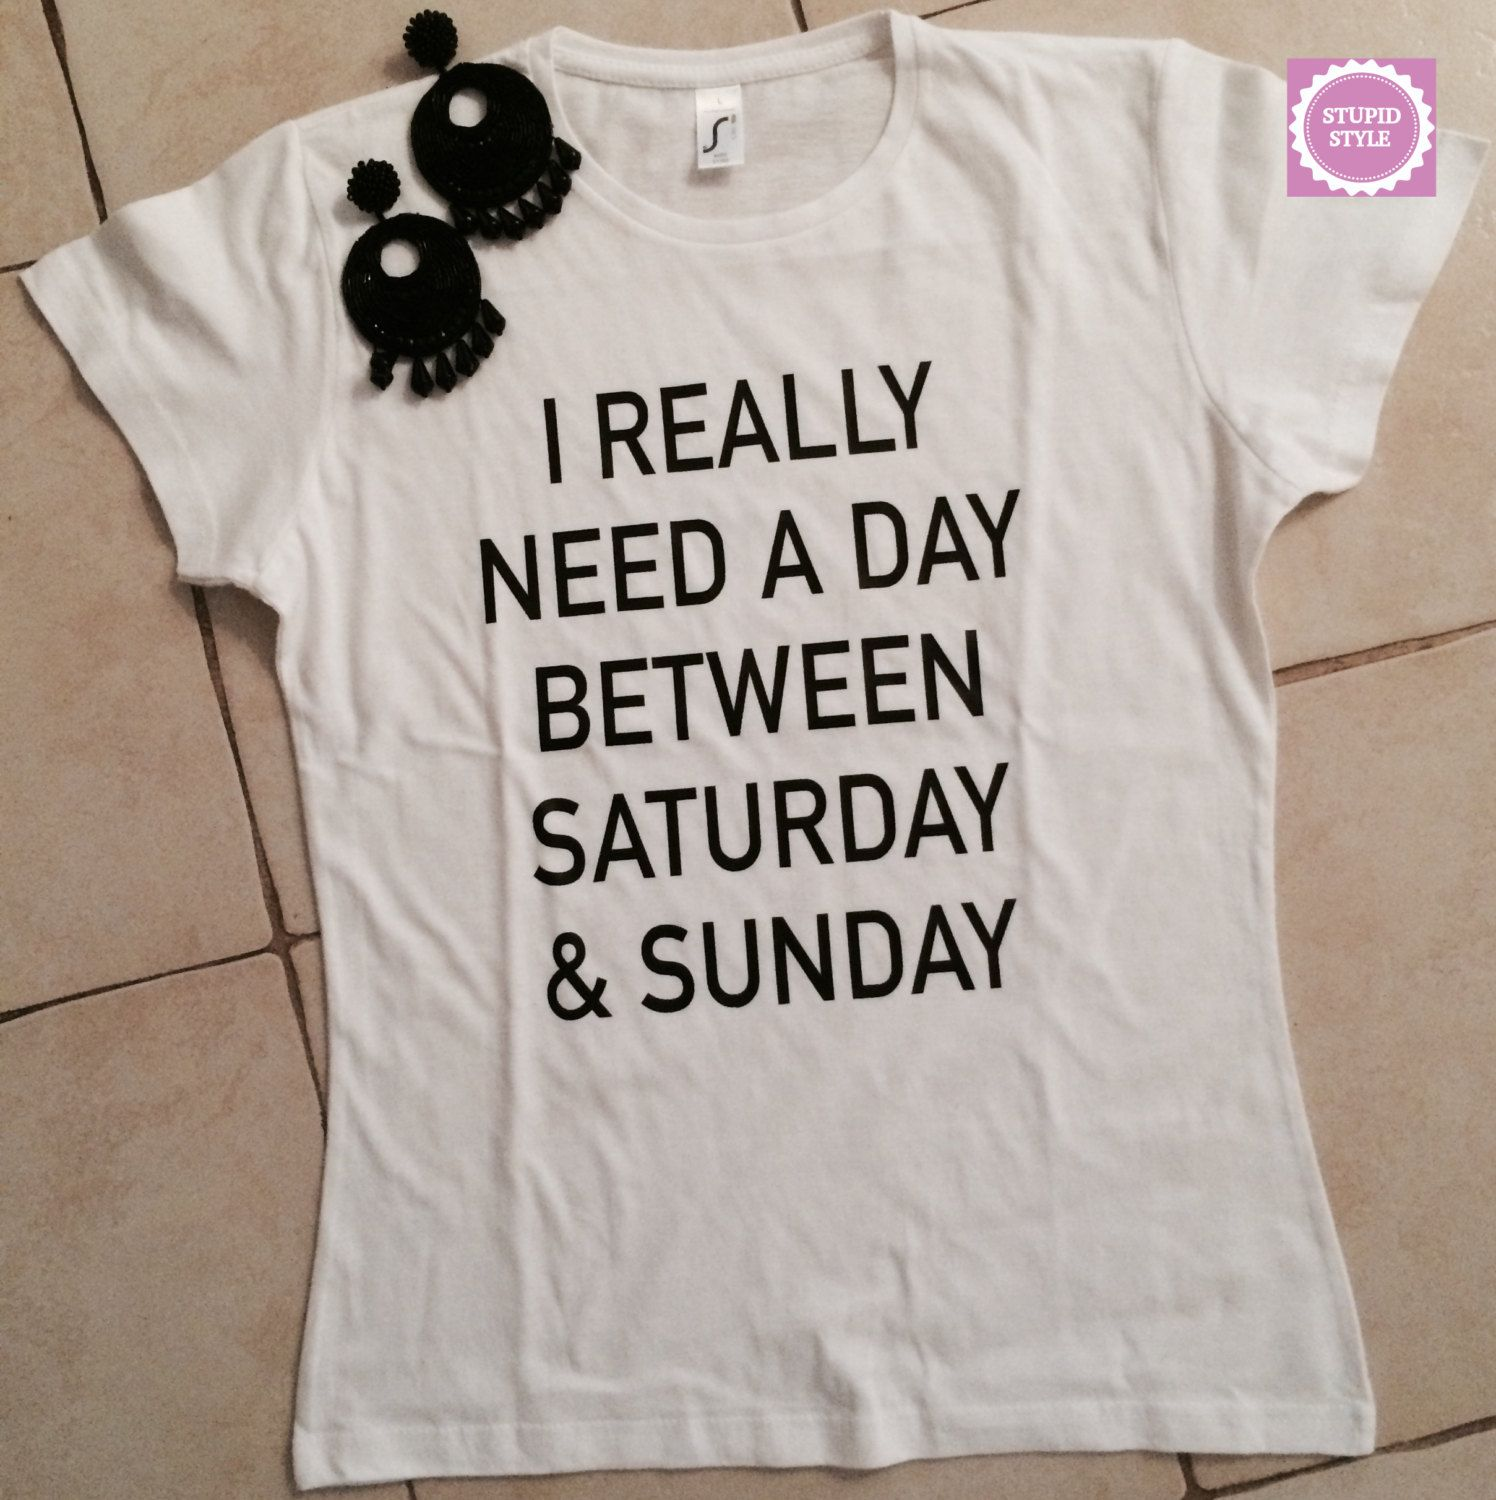 1e1fccf6e cool tee shirt sayings for teen girls | ... shirt womens girls tumblr funny  teens teenagers quotes slogan fun